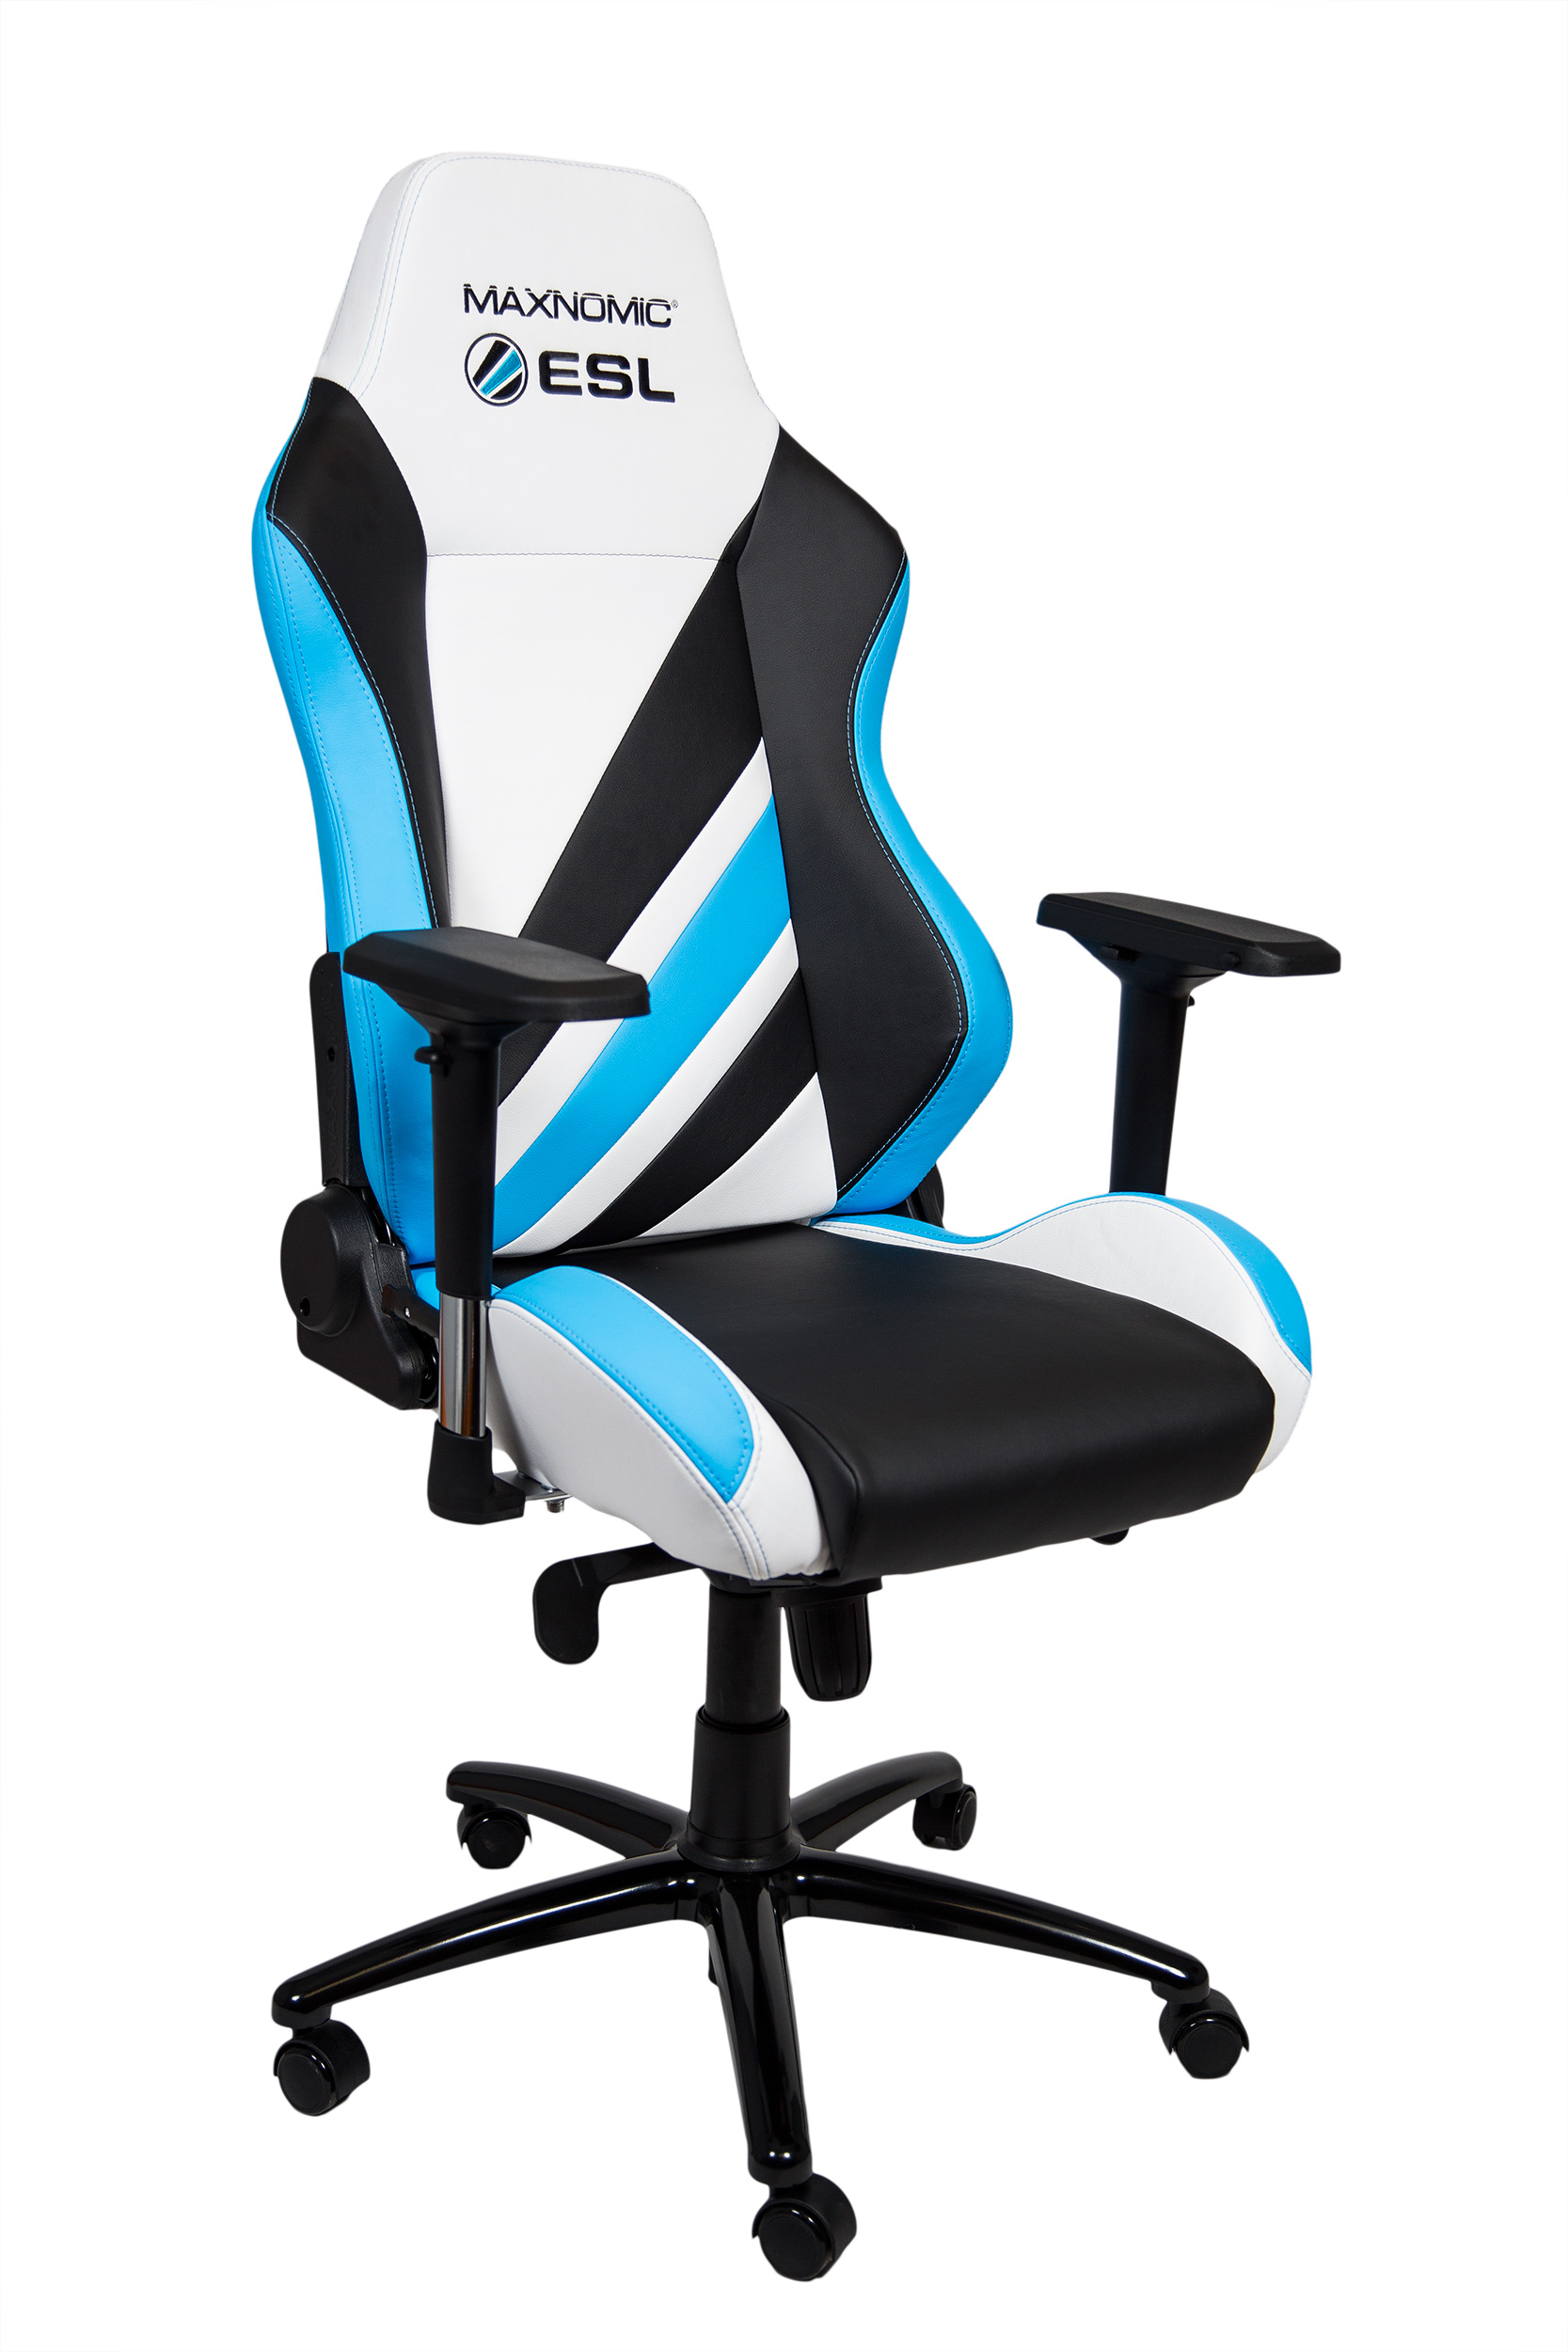 custom gaming chairs kids ottoman chair take your seat for the next generation of maxnomic esl